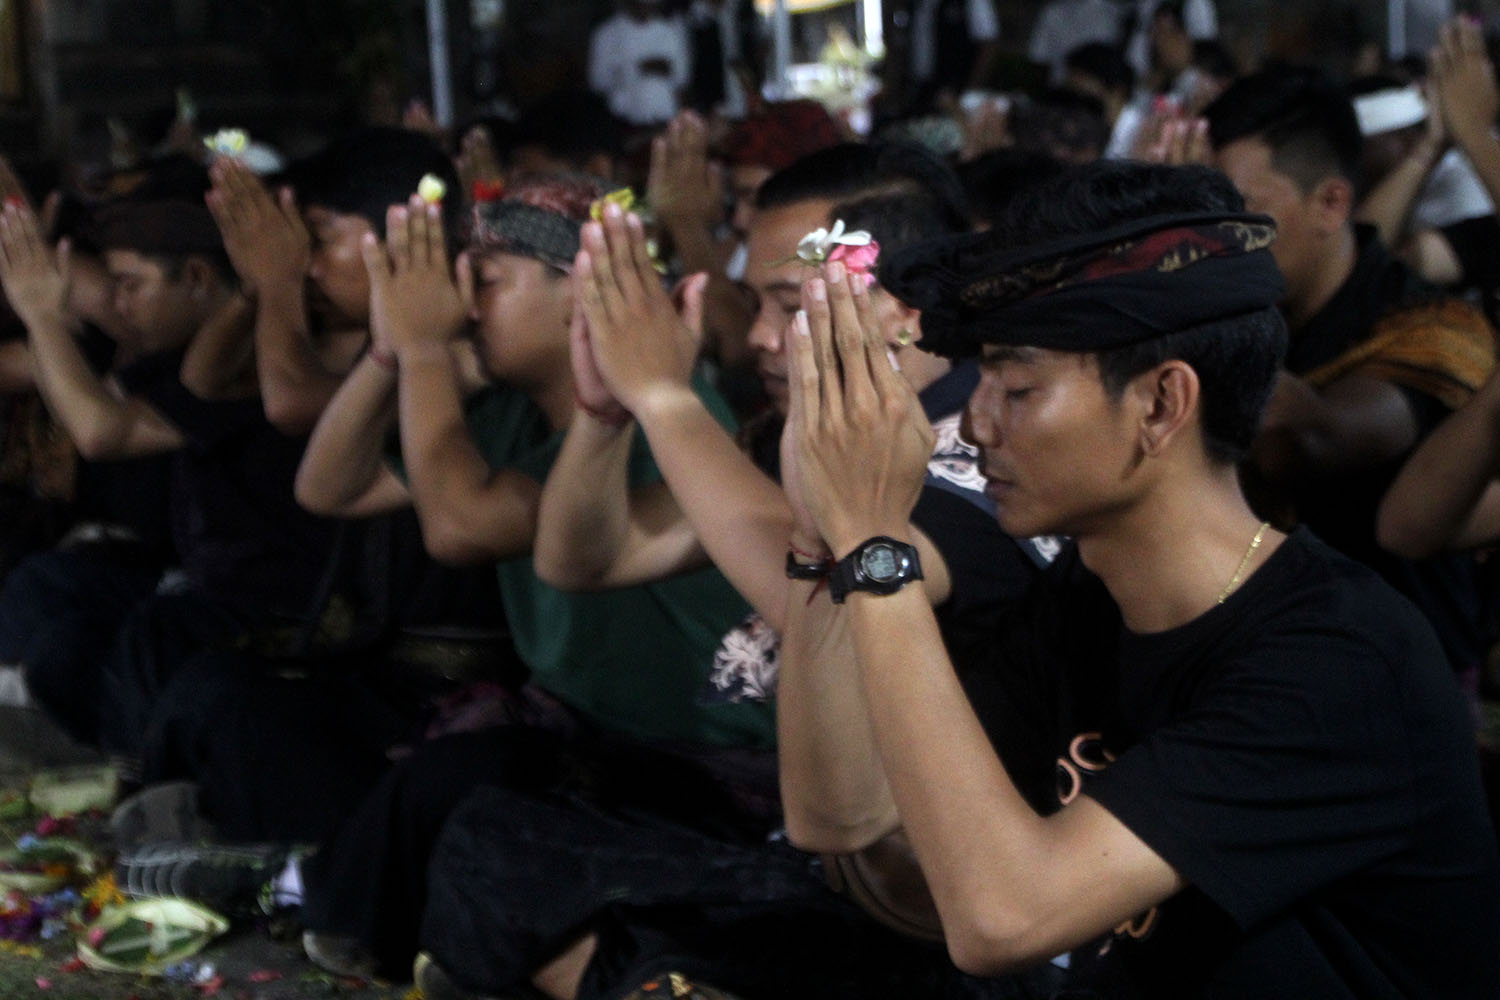 Prior to taking part in the tradition, the young men pray for safety at Dalam Kayangan Temple, Tuban village, Kuta, Badung, Bali, on Sunday, Oct. 13. JP/Zul Trio Anggono